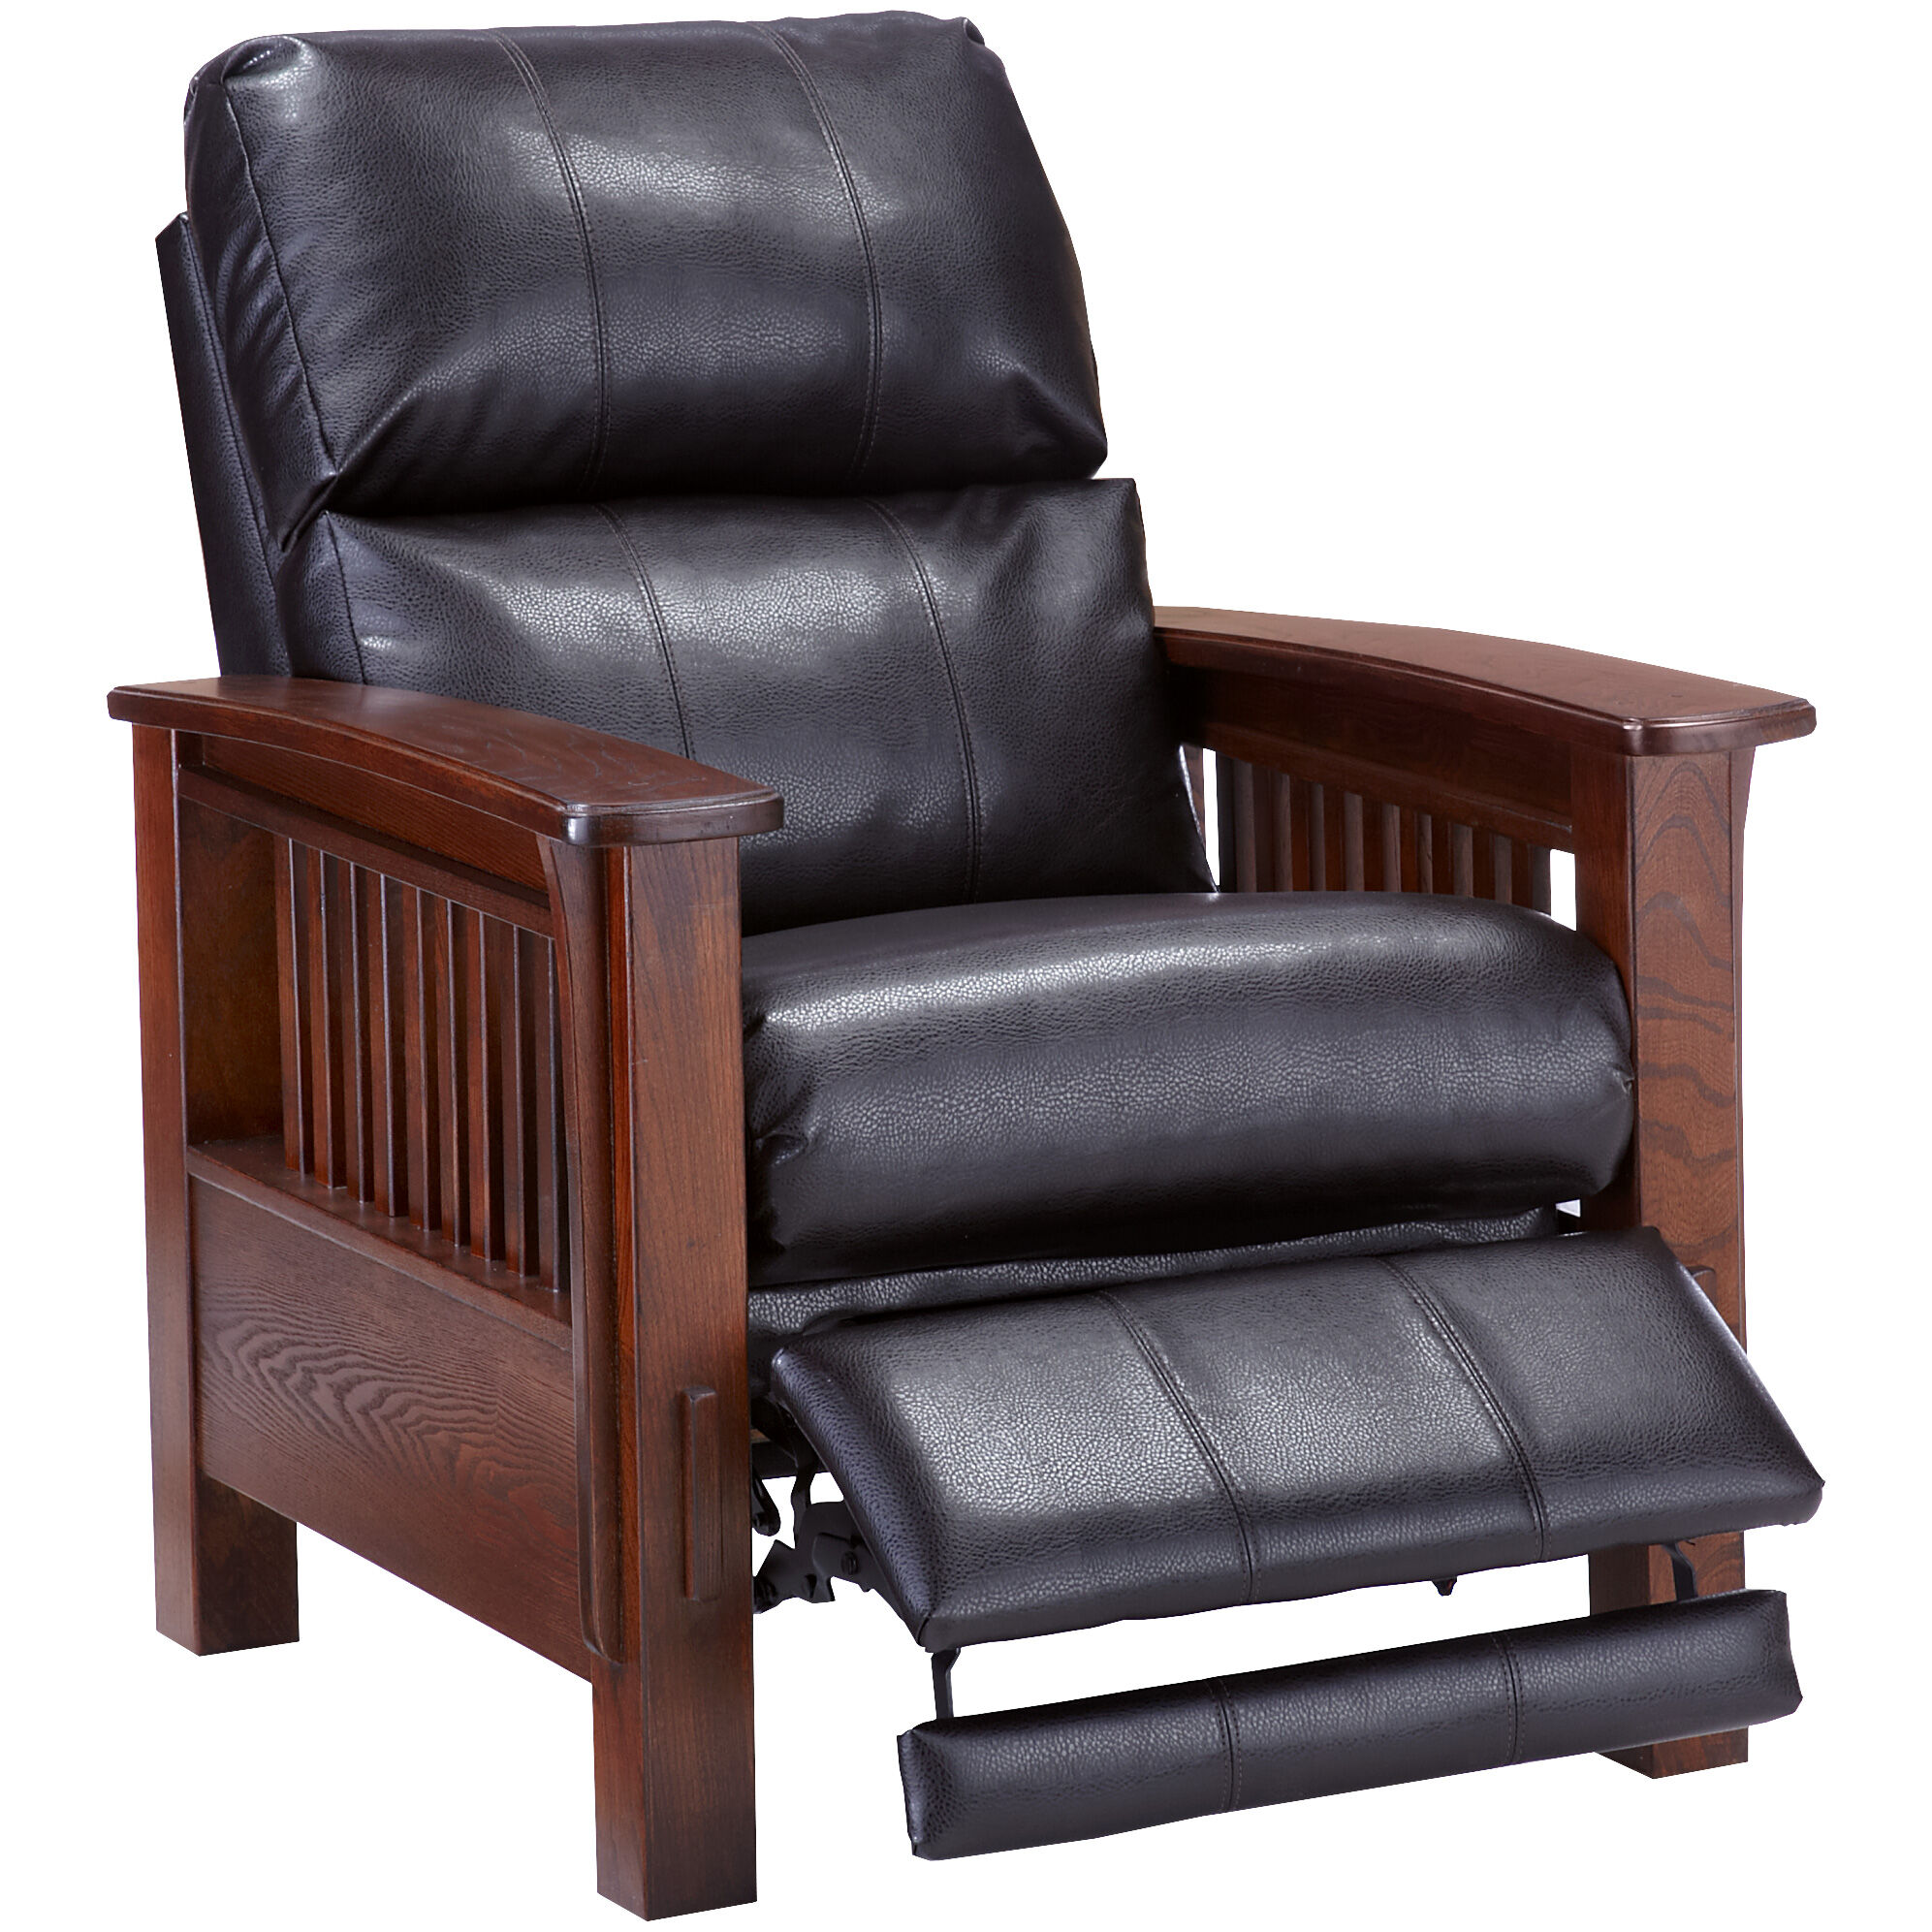 Beau Wright Chocolate Recliner; Wright Chocolate Recliner ...